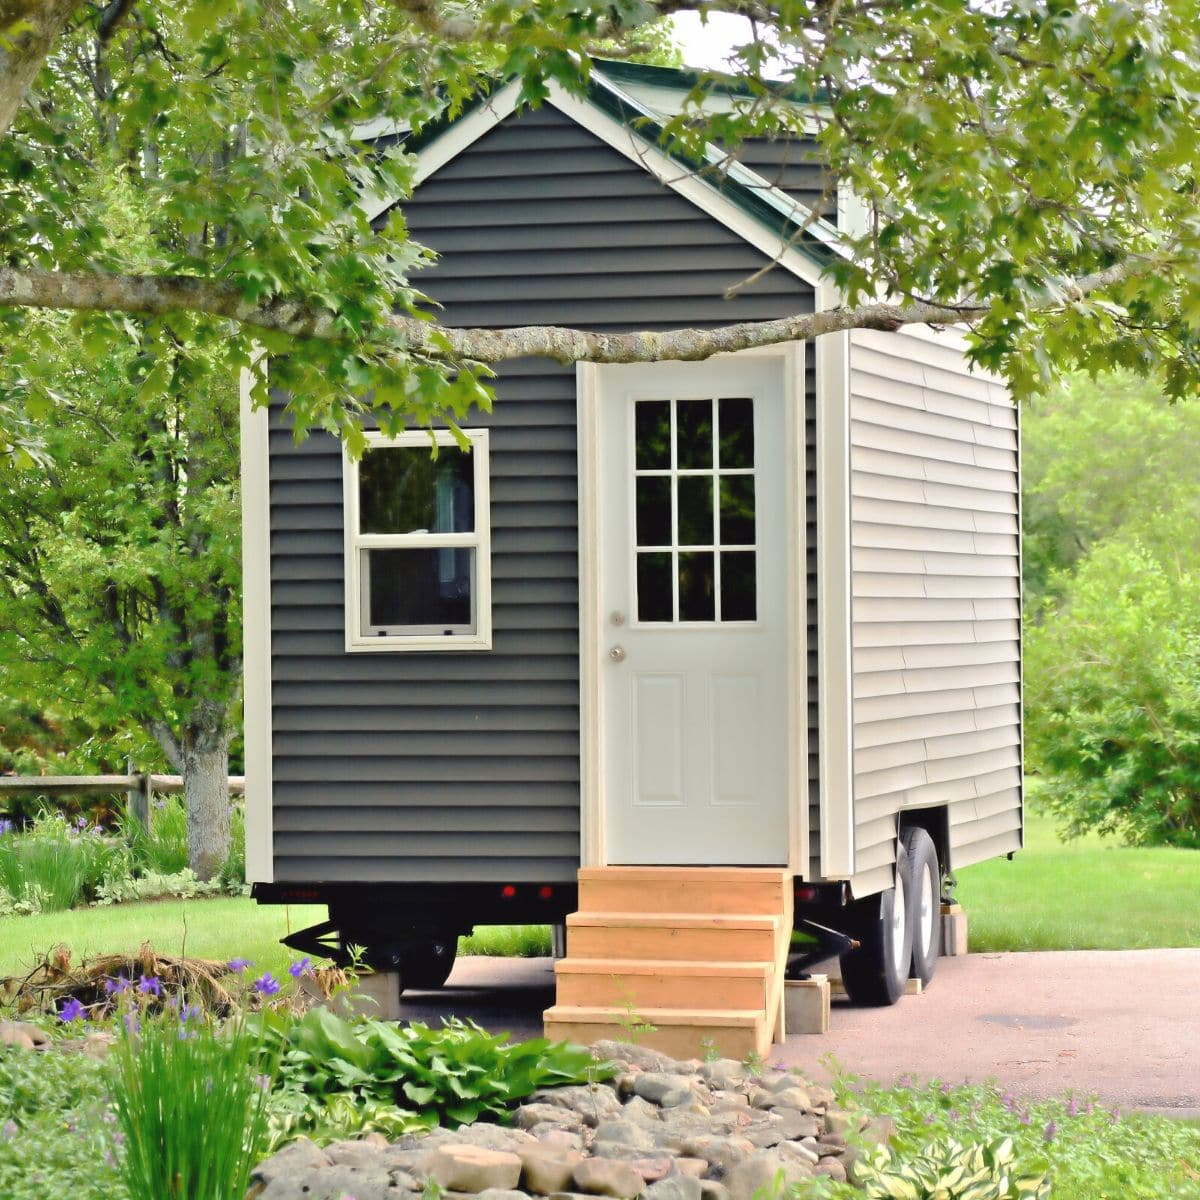 17 Do It Yourself Tiny Houses With Free Or Low Cost Plans Tiny Houses